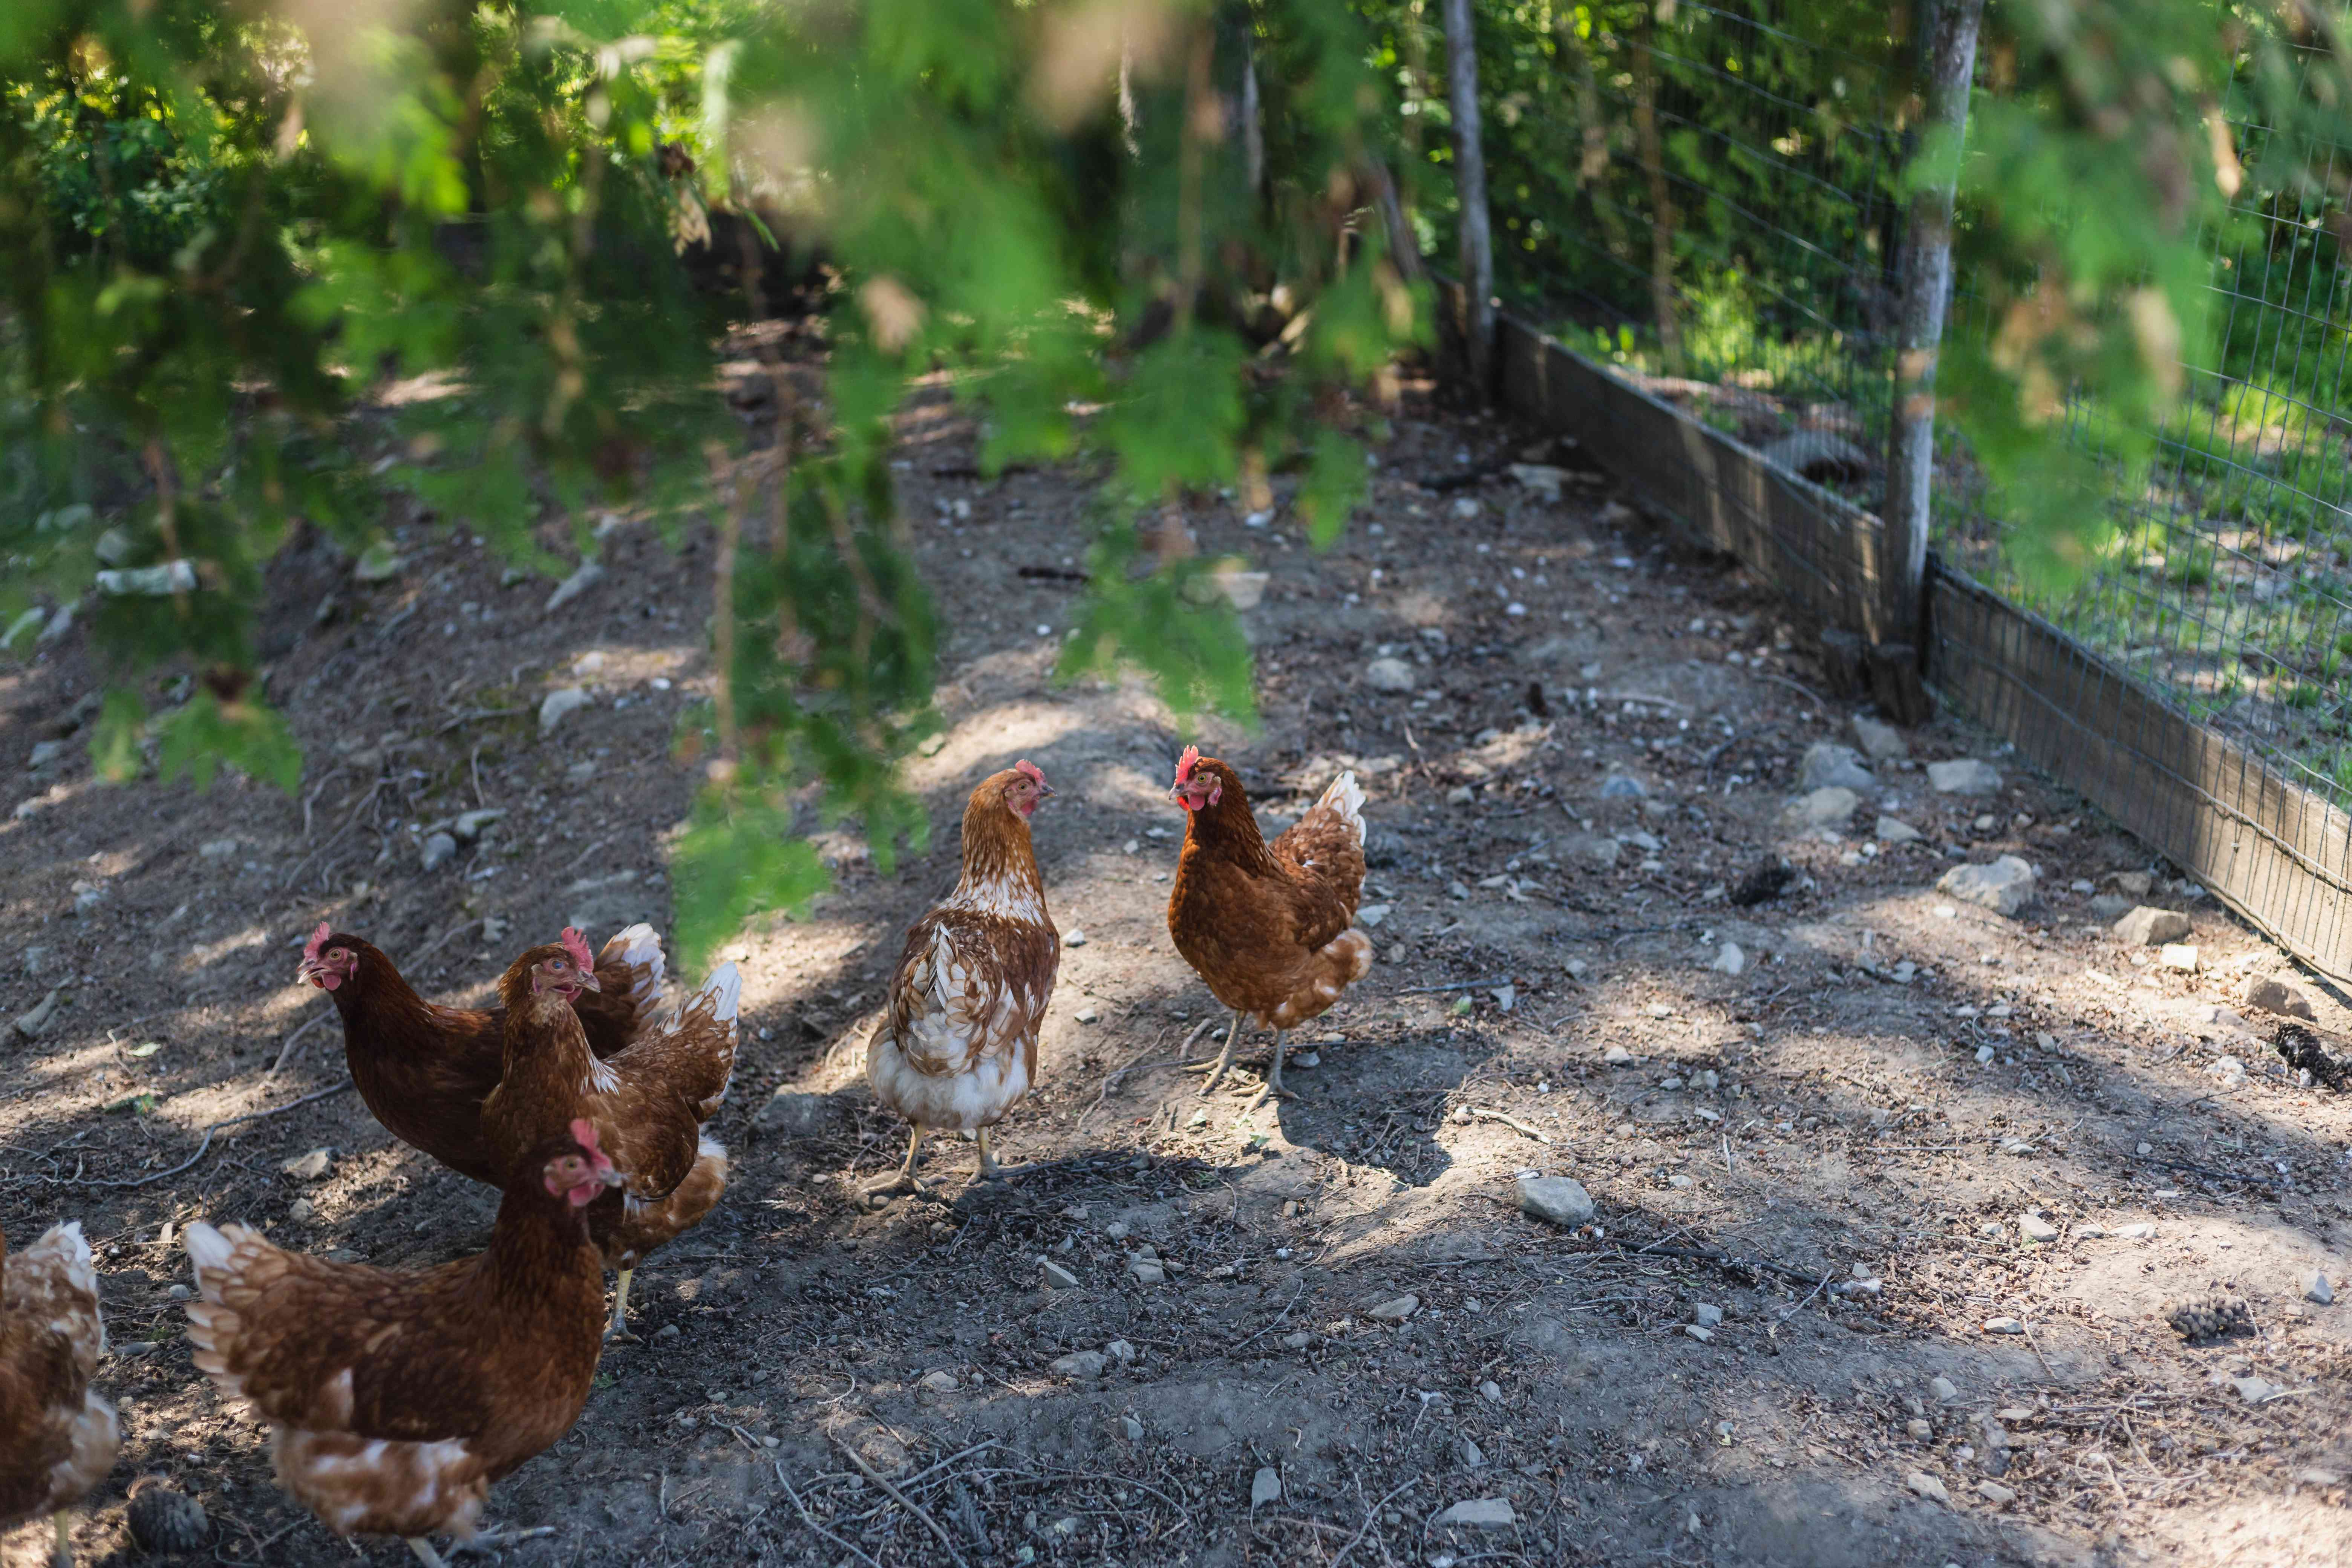 Homesteading with outdoor chicken coop and hens running around